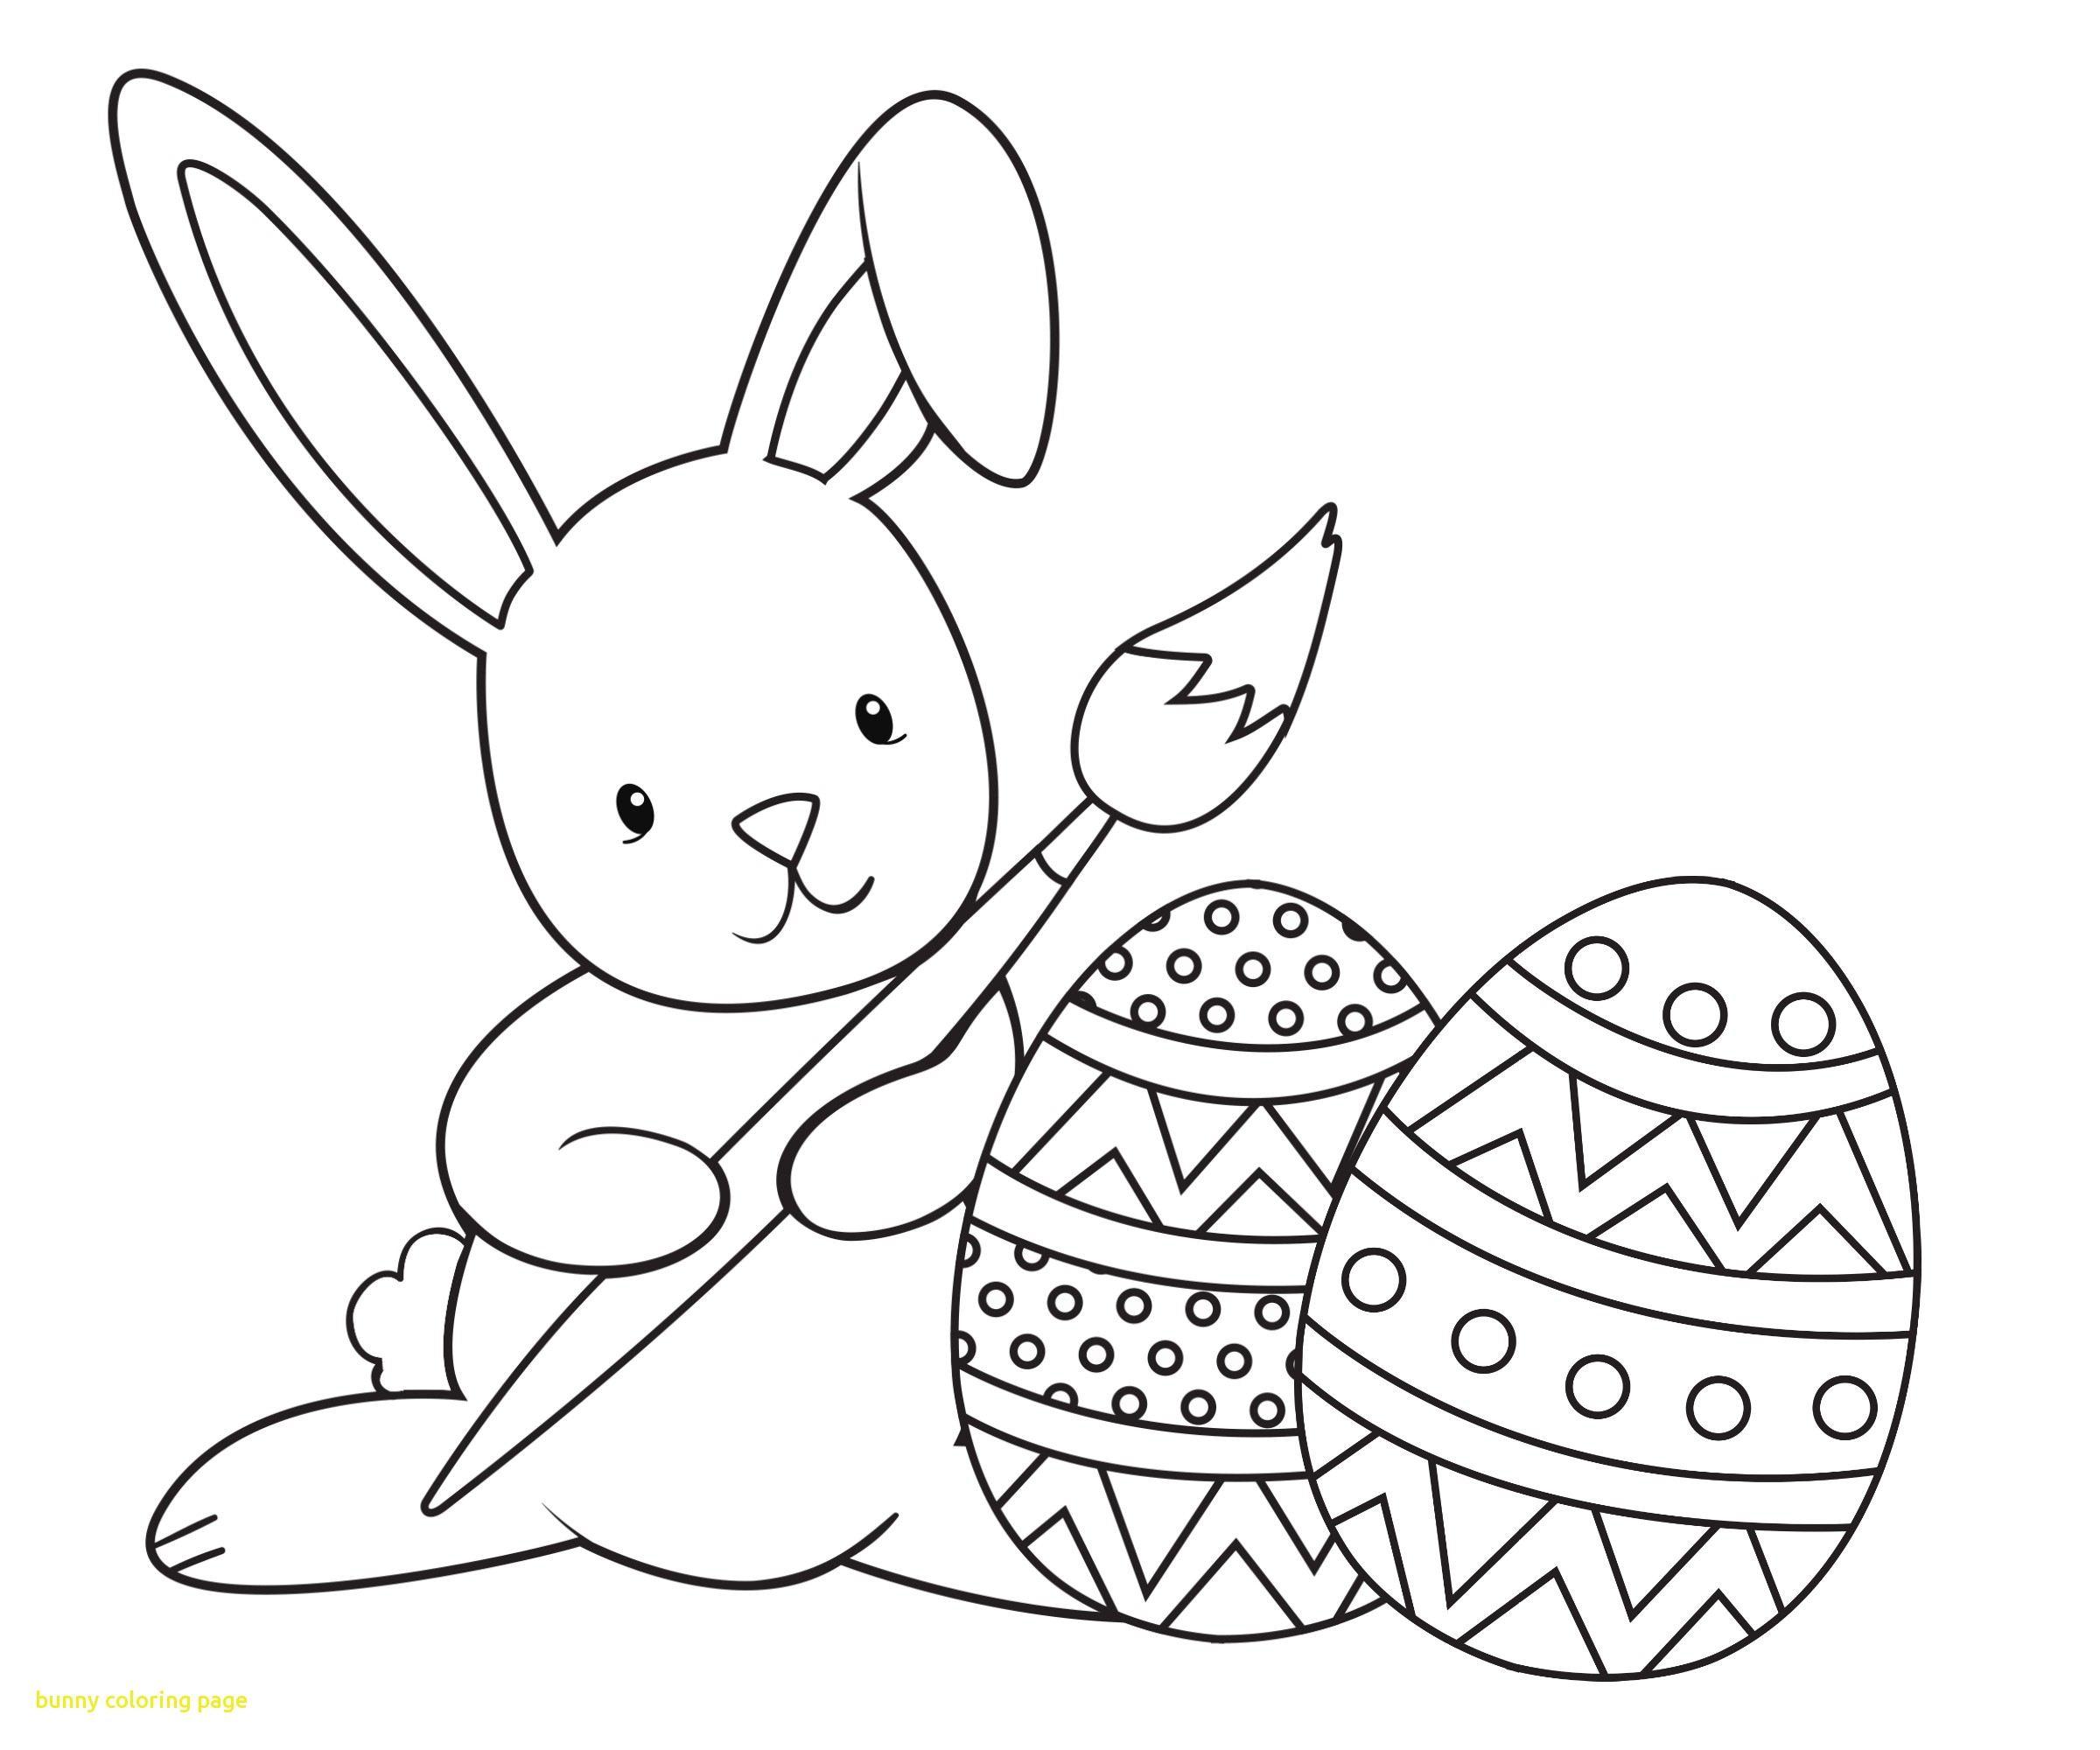 Bunny With Carrot Coloring Pages At GetDrawings.com